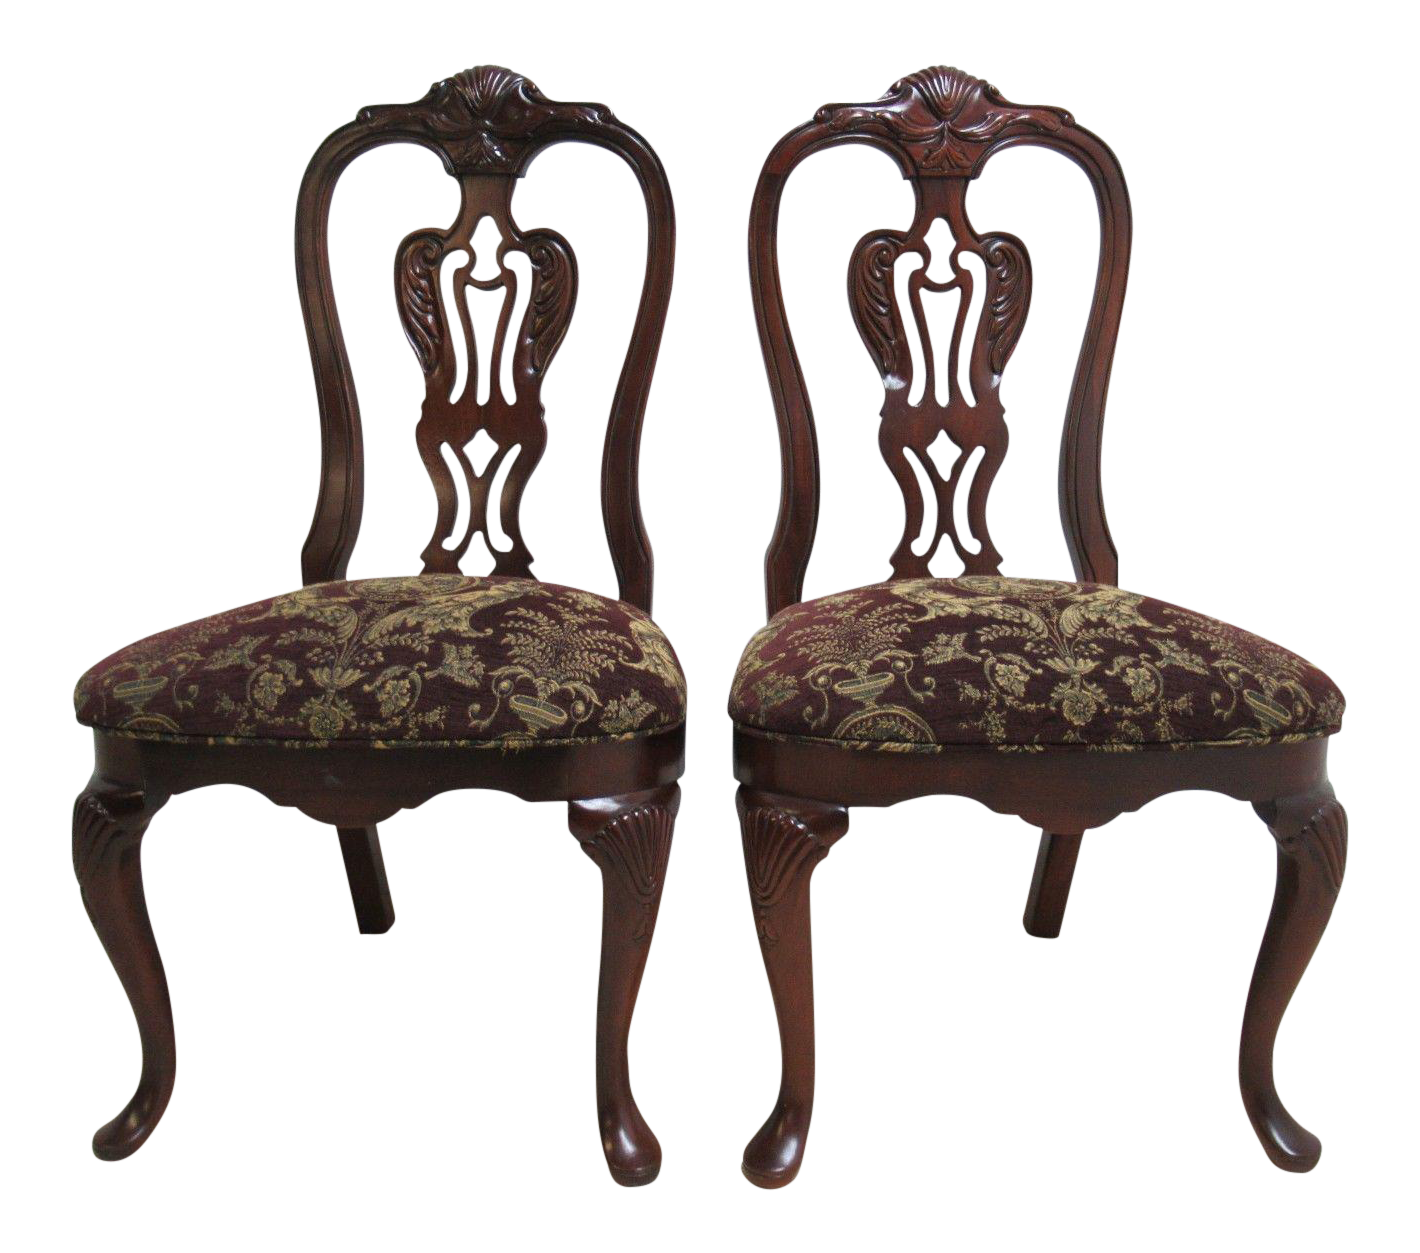 Thomasville Solid Mahogany Chippendale Dining Chairs - A Pair  sc 1 st  Chairish & Thomasville Solid Mahogany Chippendale Dining Chairs - A Pair | Chairish